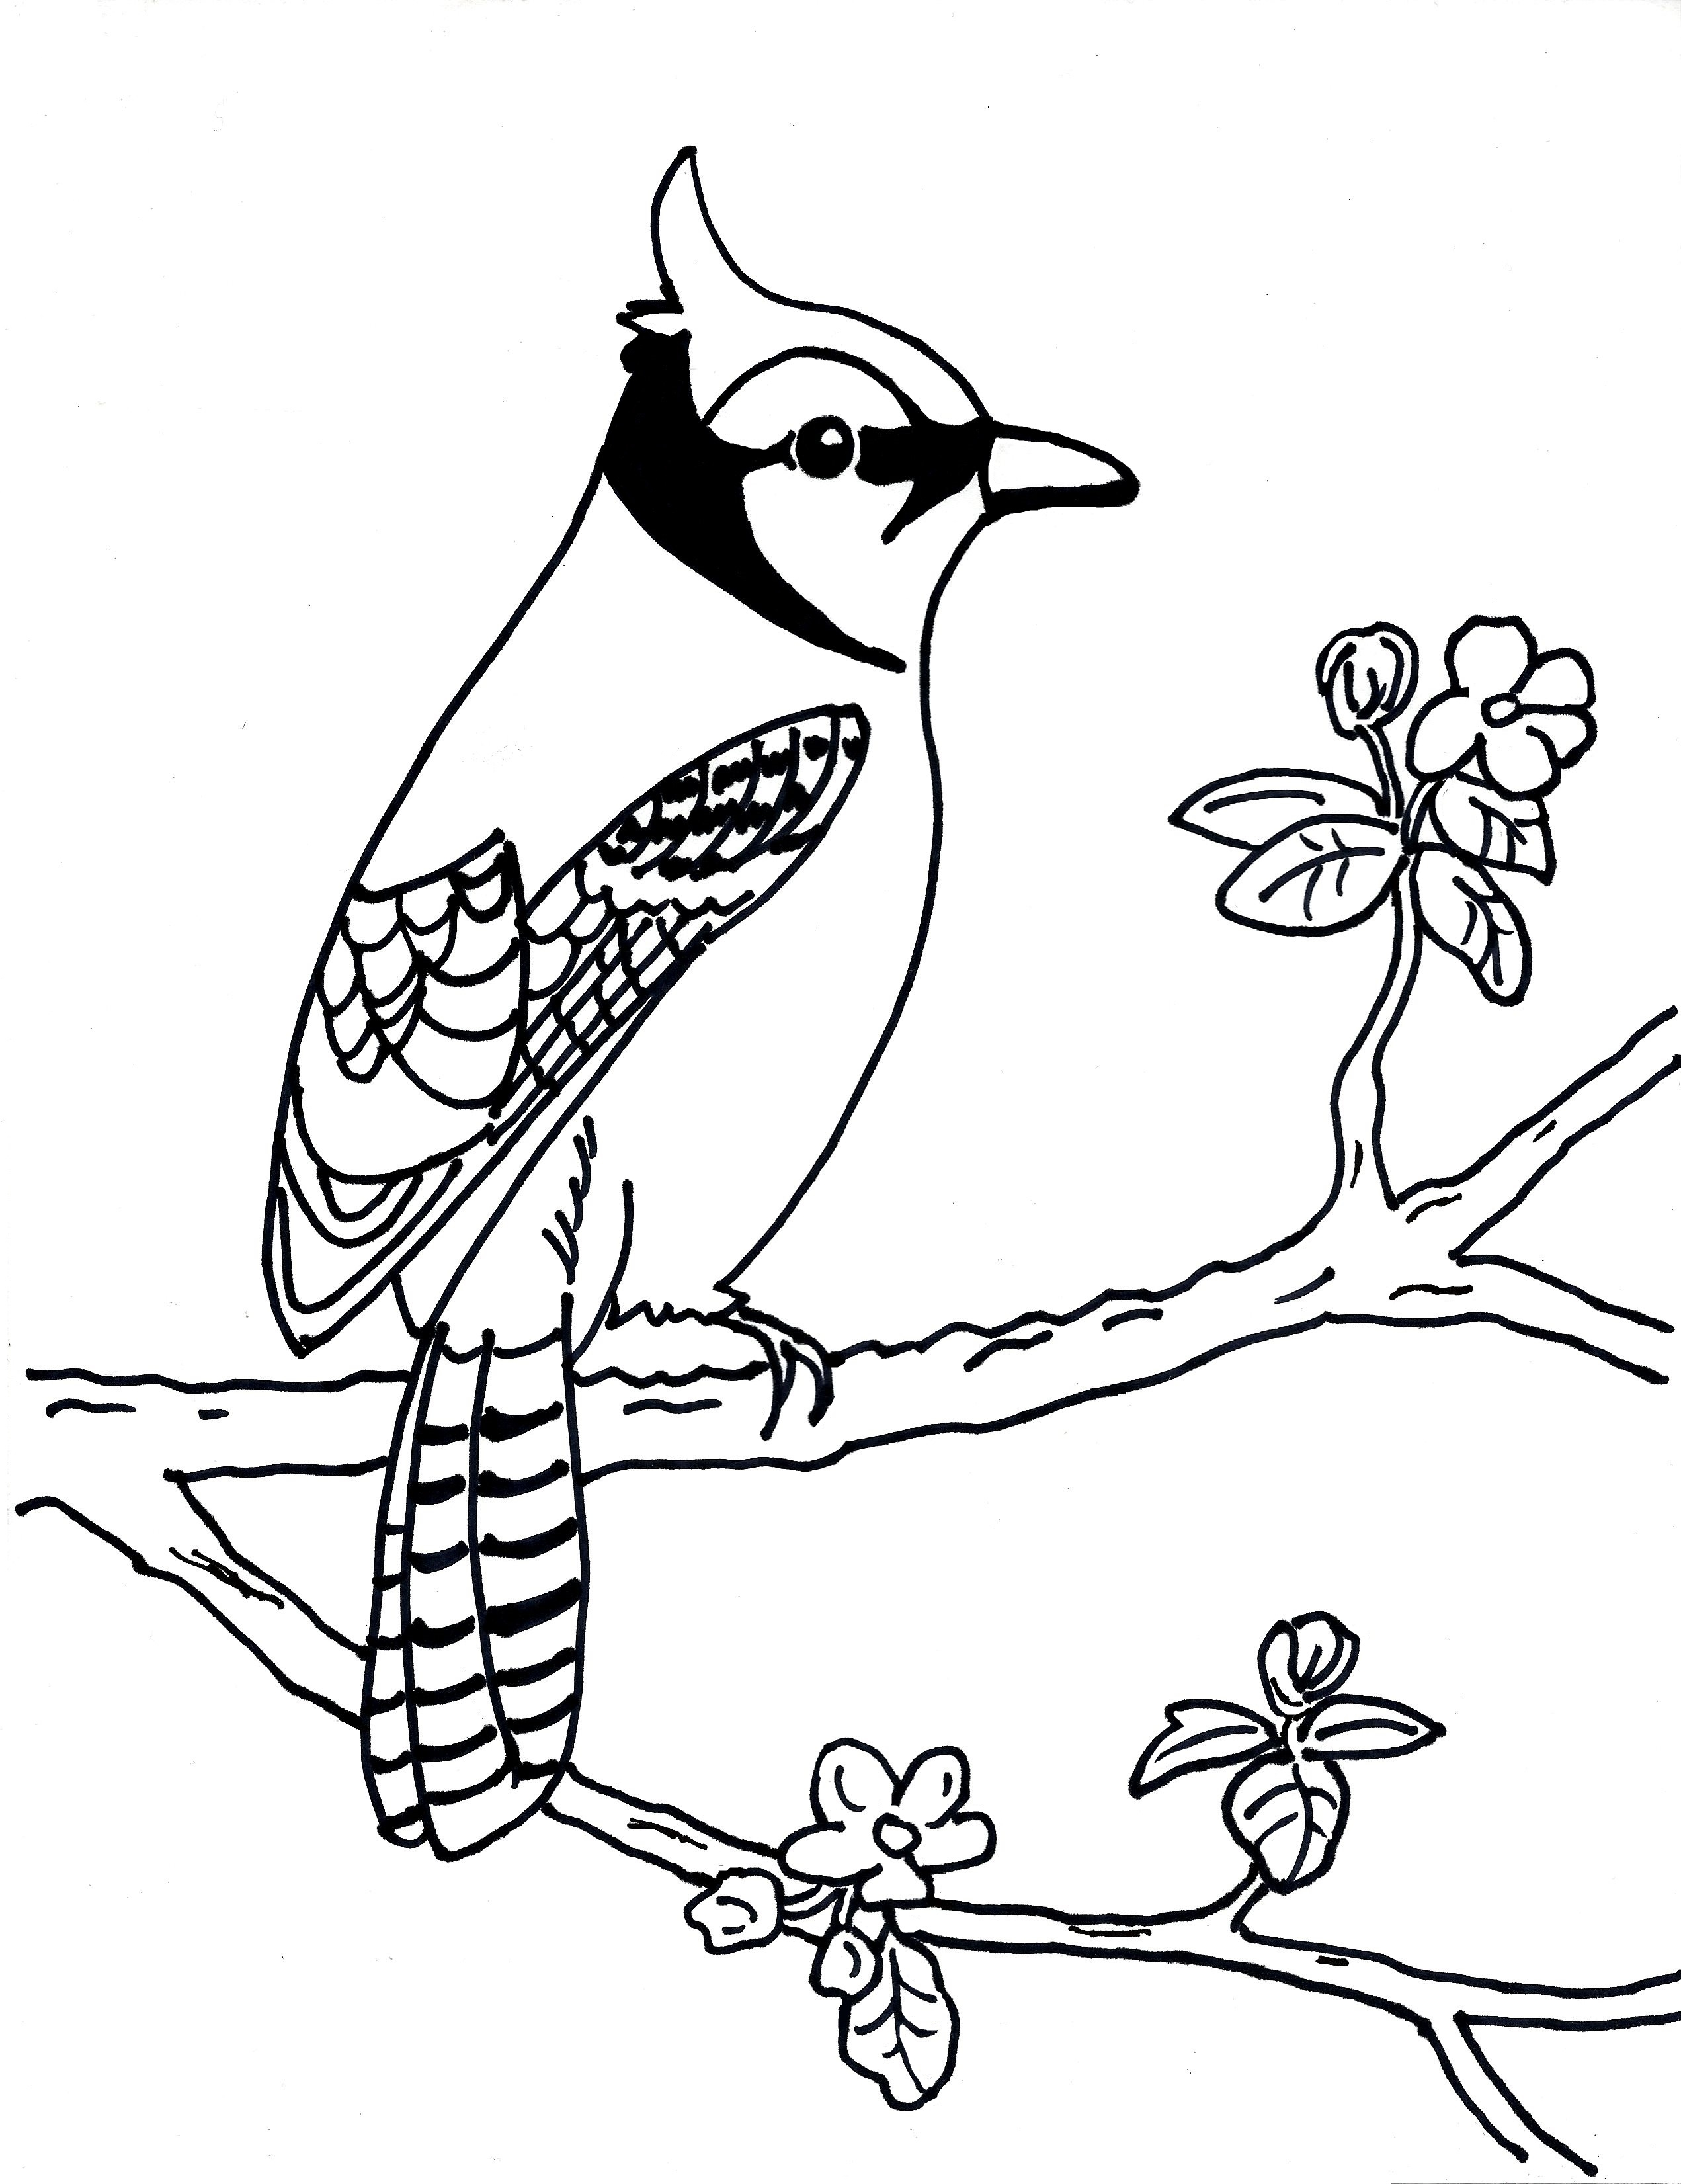 blue jay coloring page - blue jay sketch templates